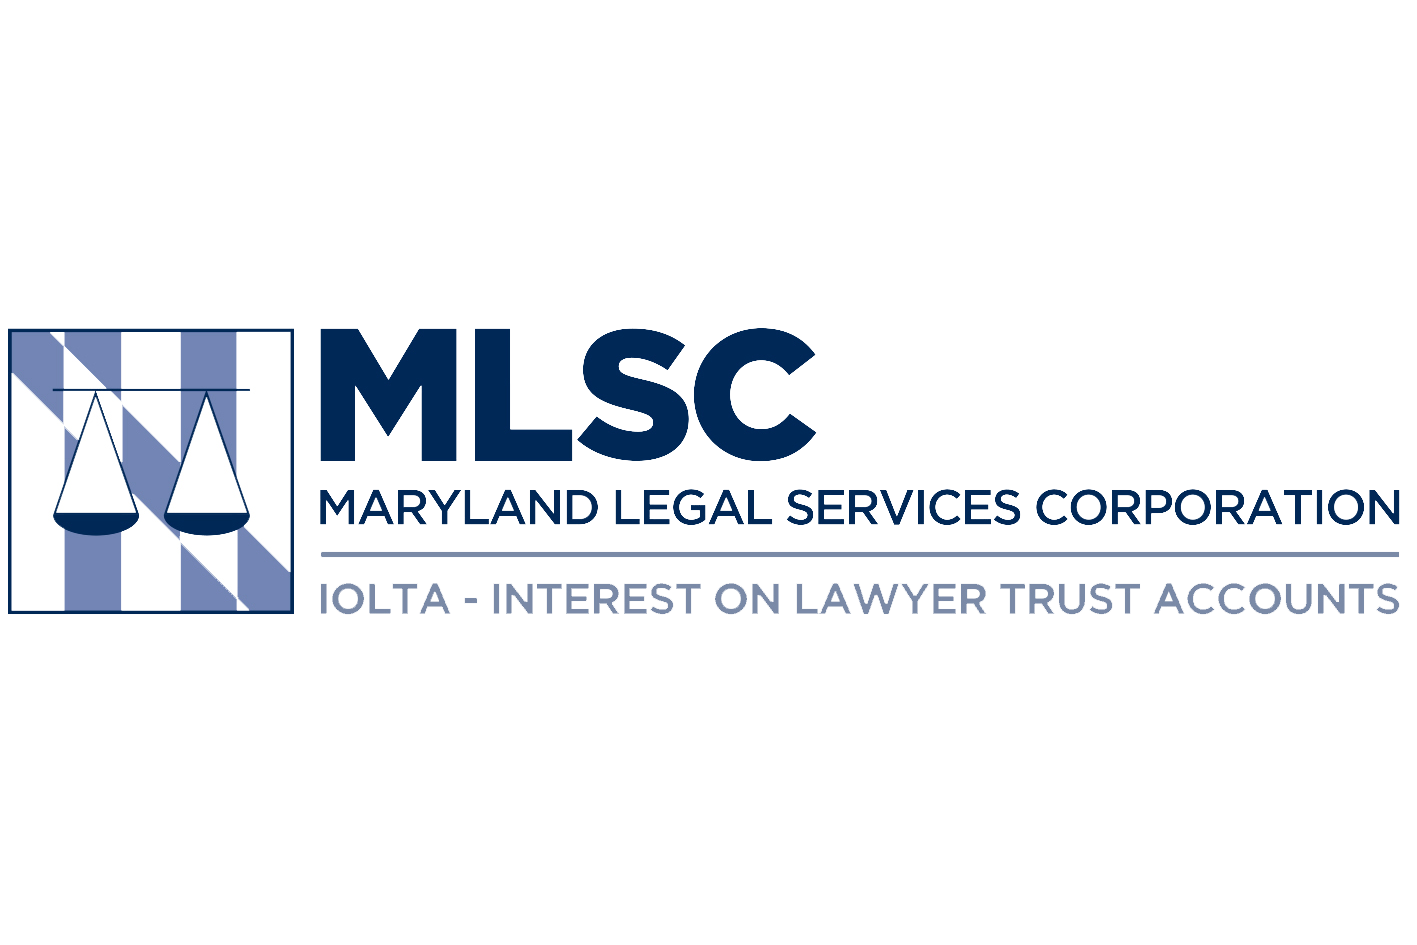 https://iolta.org/wp-content/uploads/MLSC-Logo-PNG.png